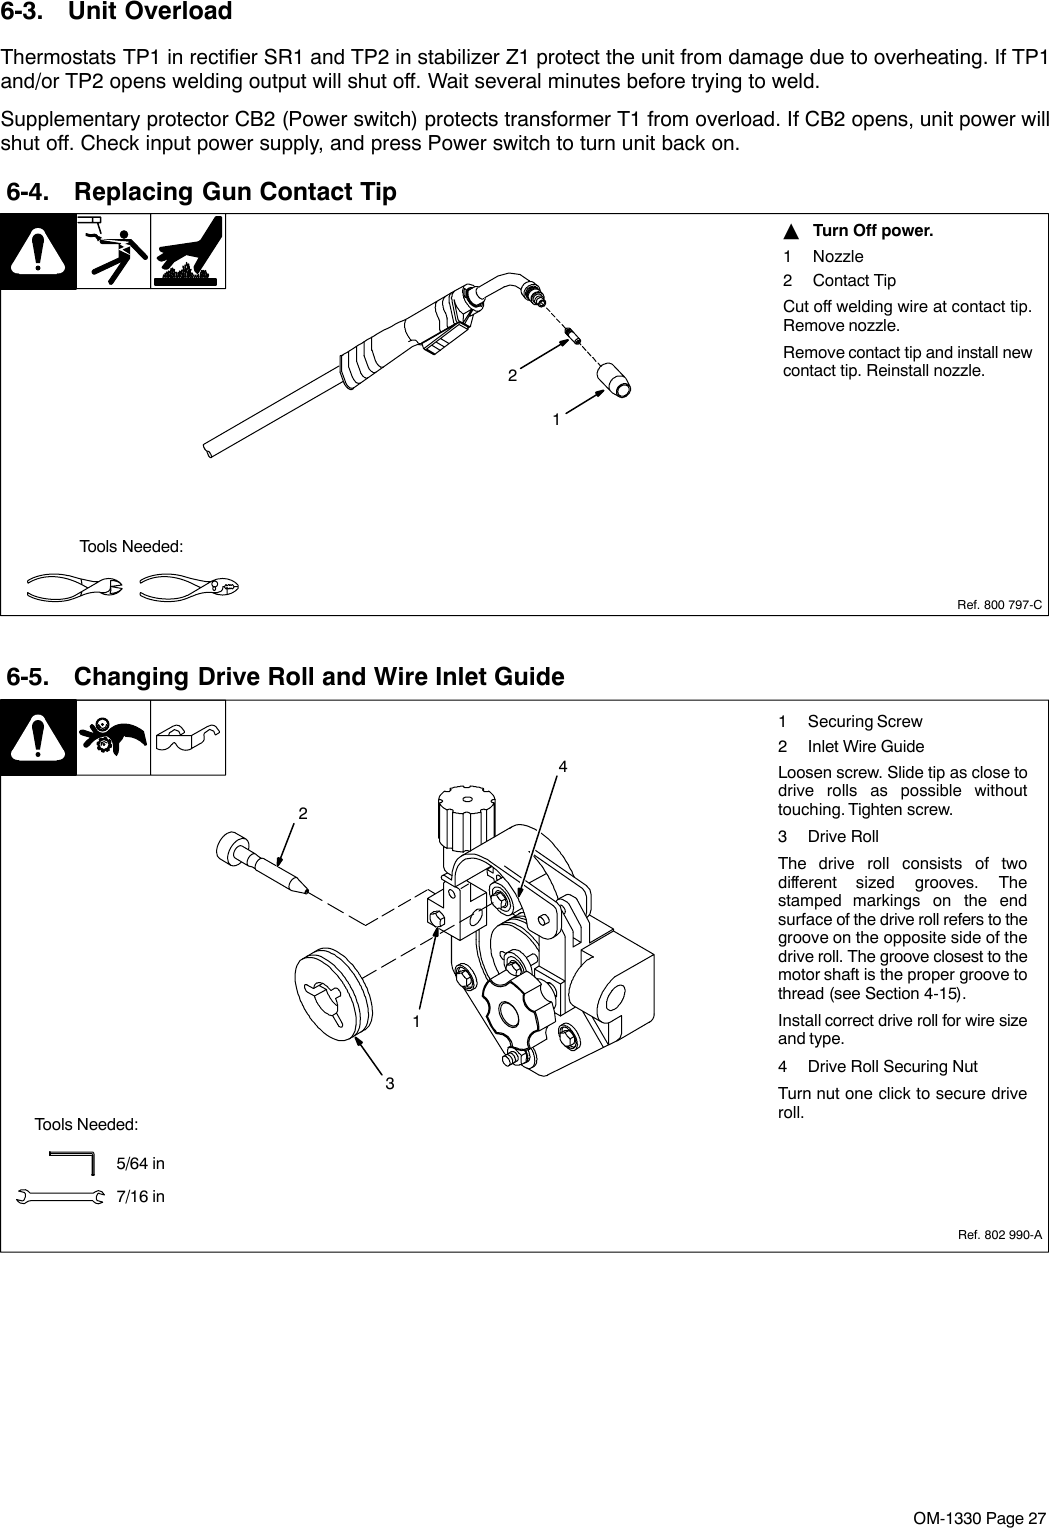 Miller Electric Millermatic Dvi Users Manual on